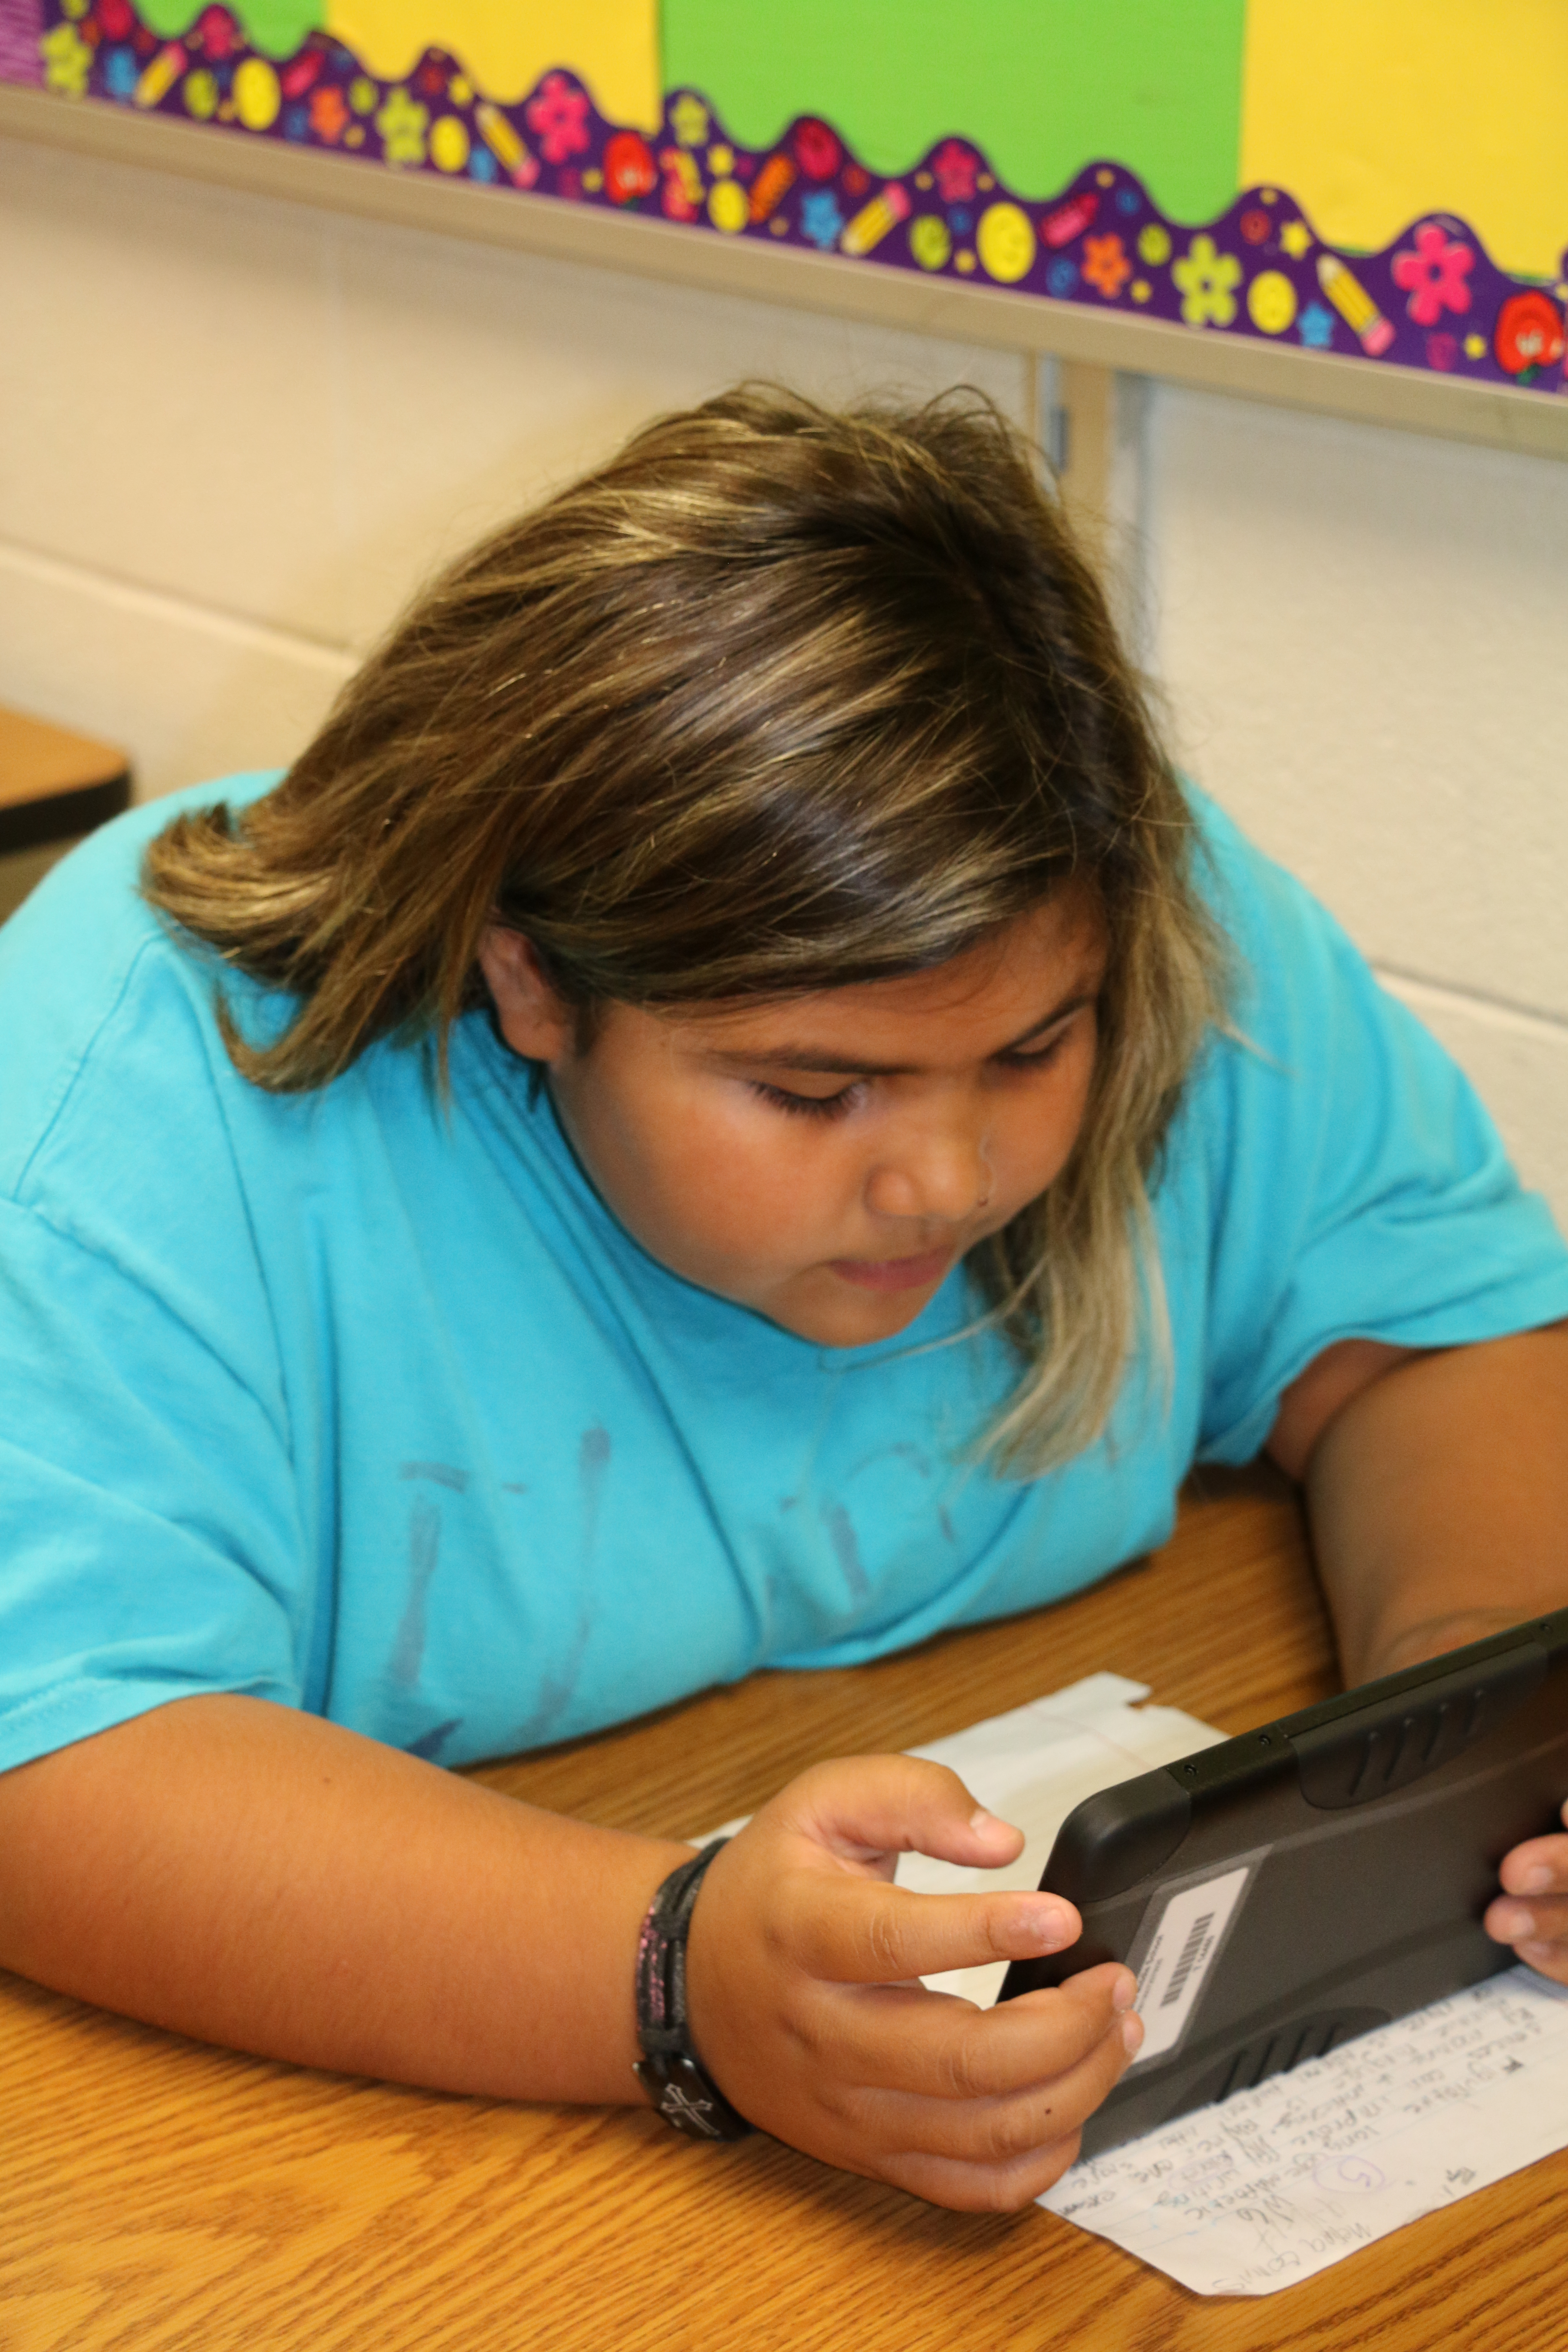 Student Using ZenPad Tablets